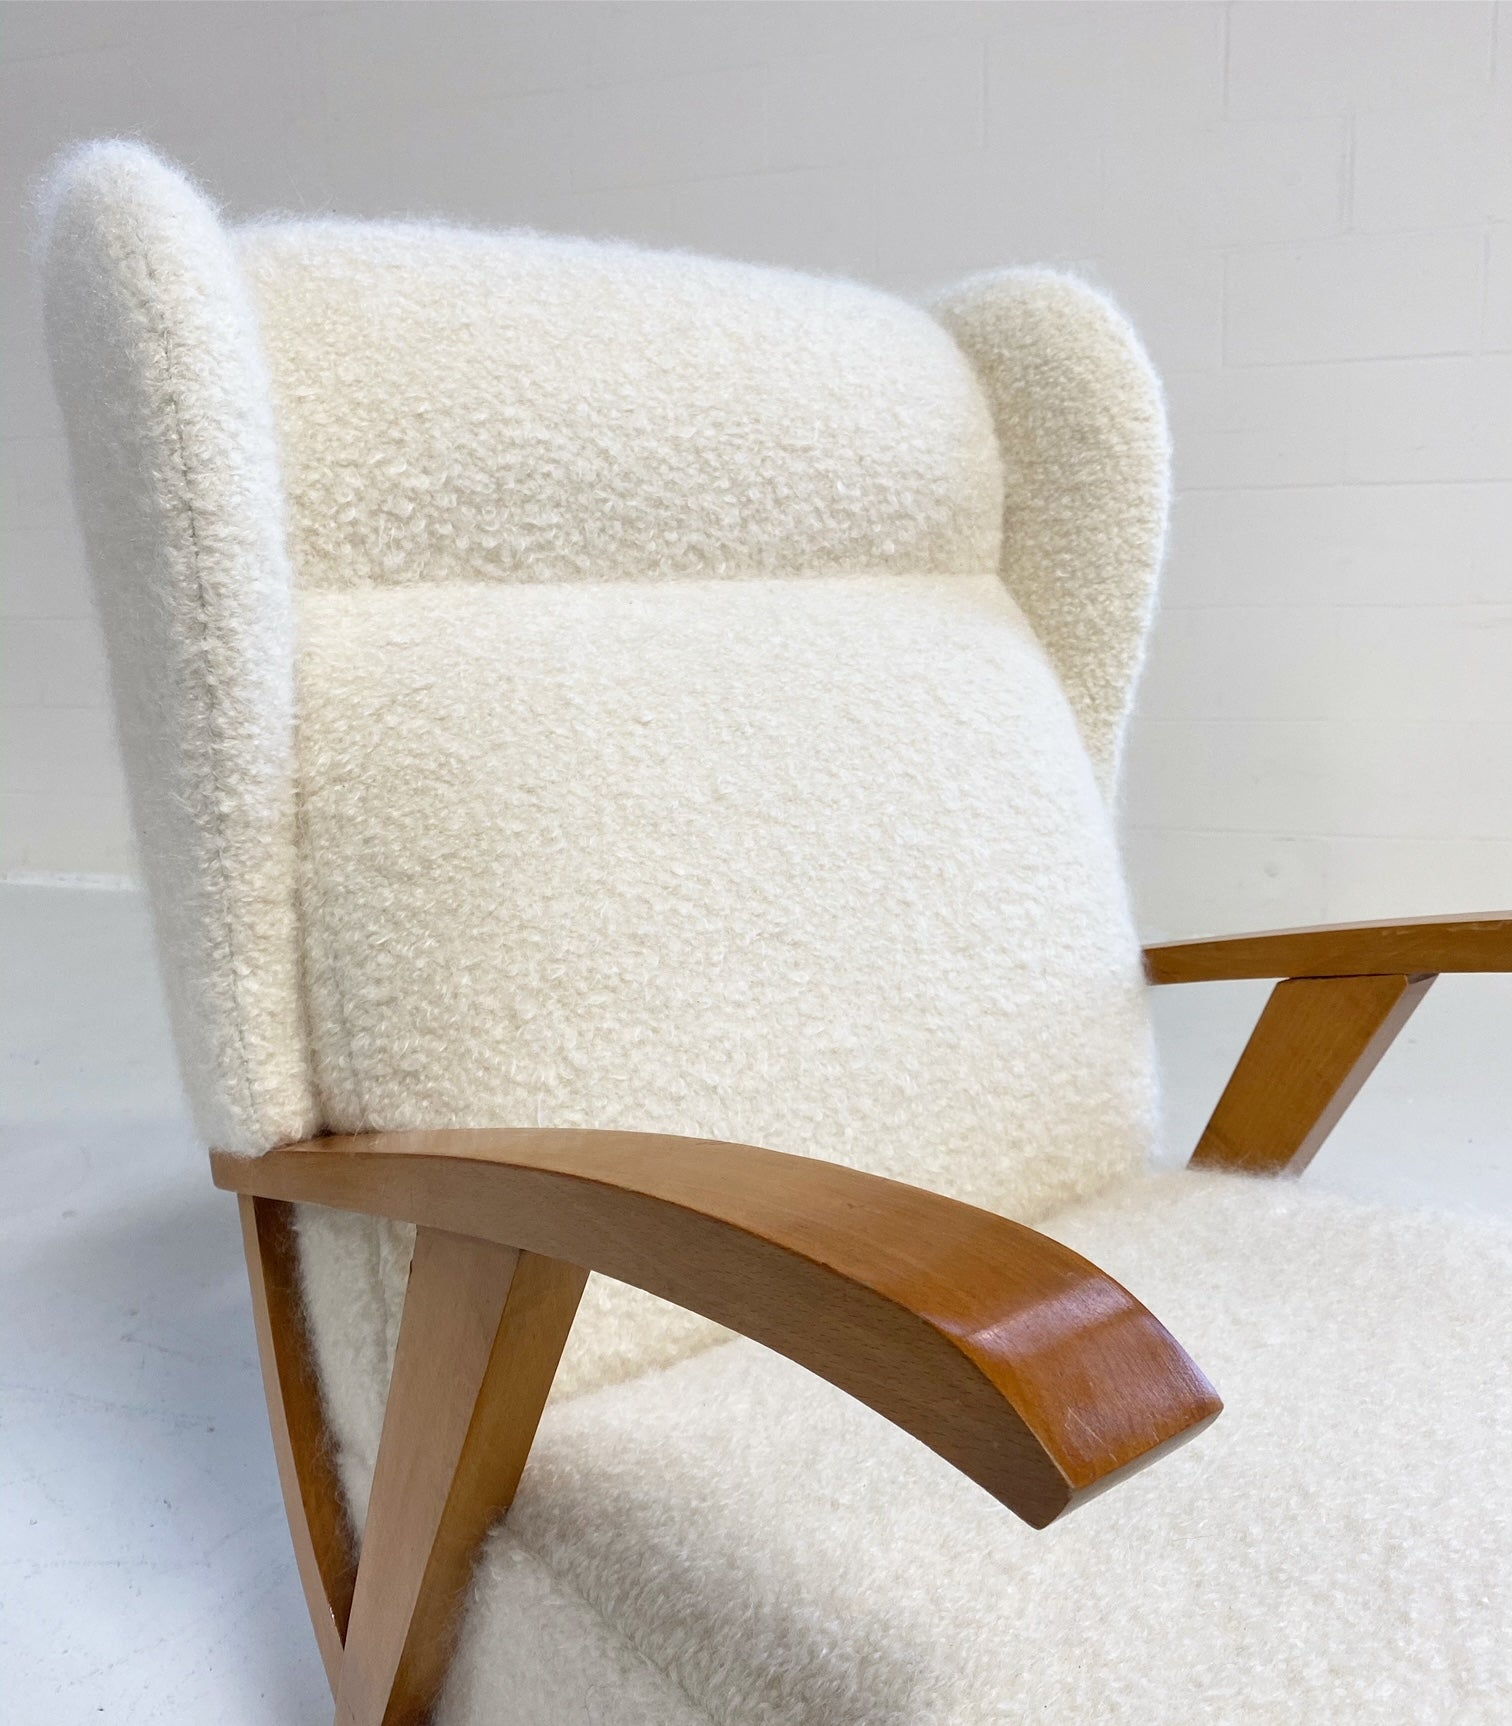 Italian Lounge Chairs in Pierre Frey boucle, pair